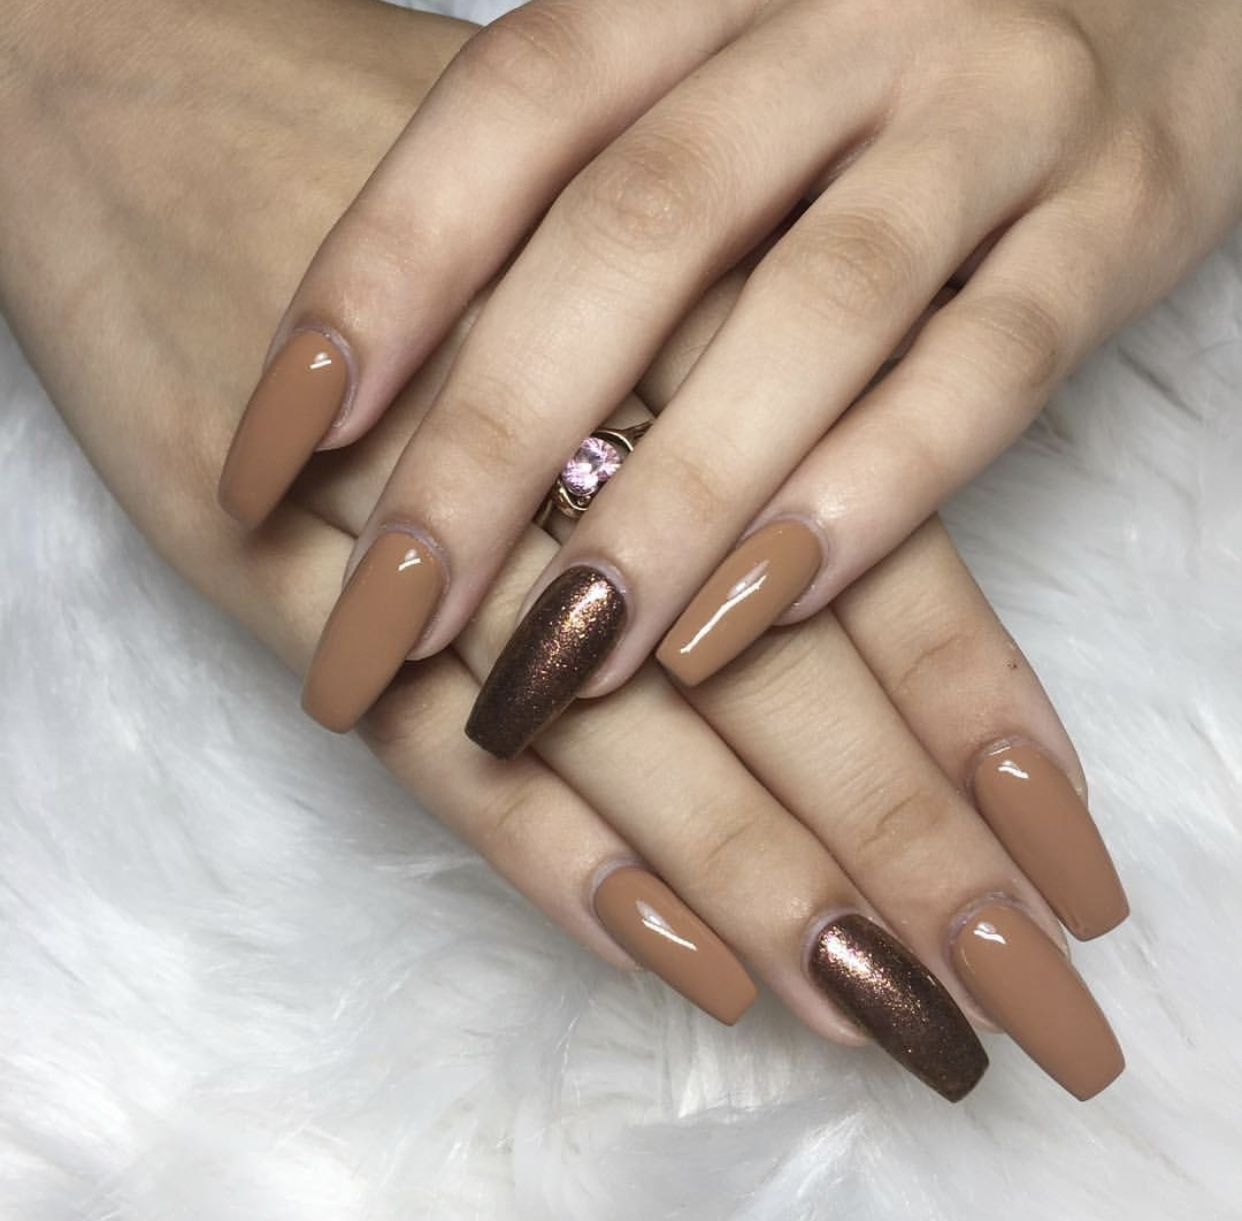 New set fall is here #fallcolors #coffin #acrylic #acrylicnails ...